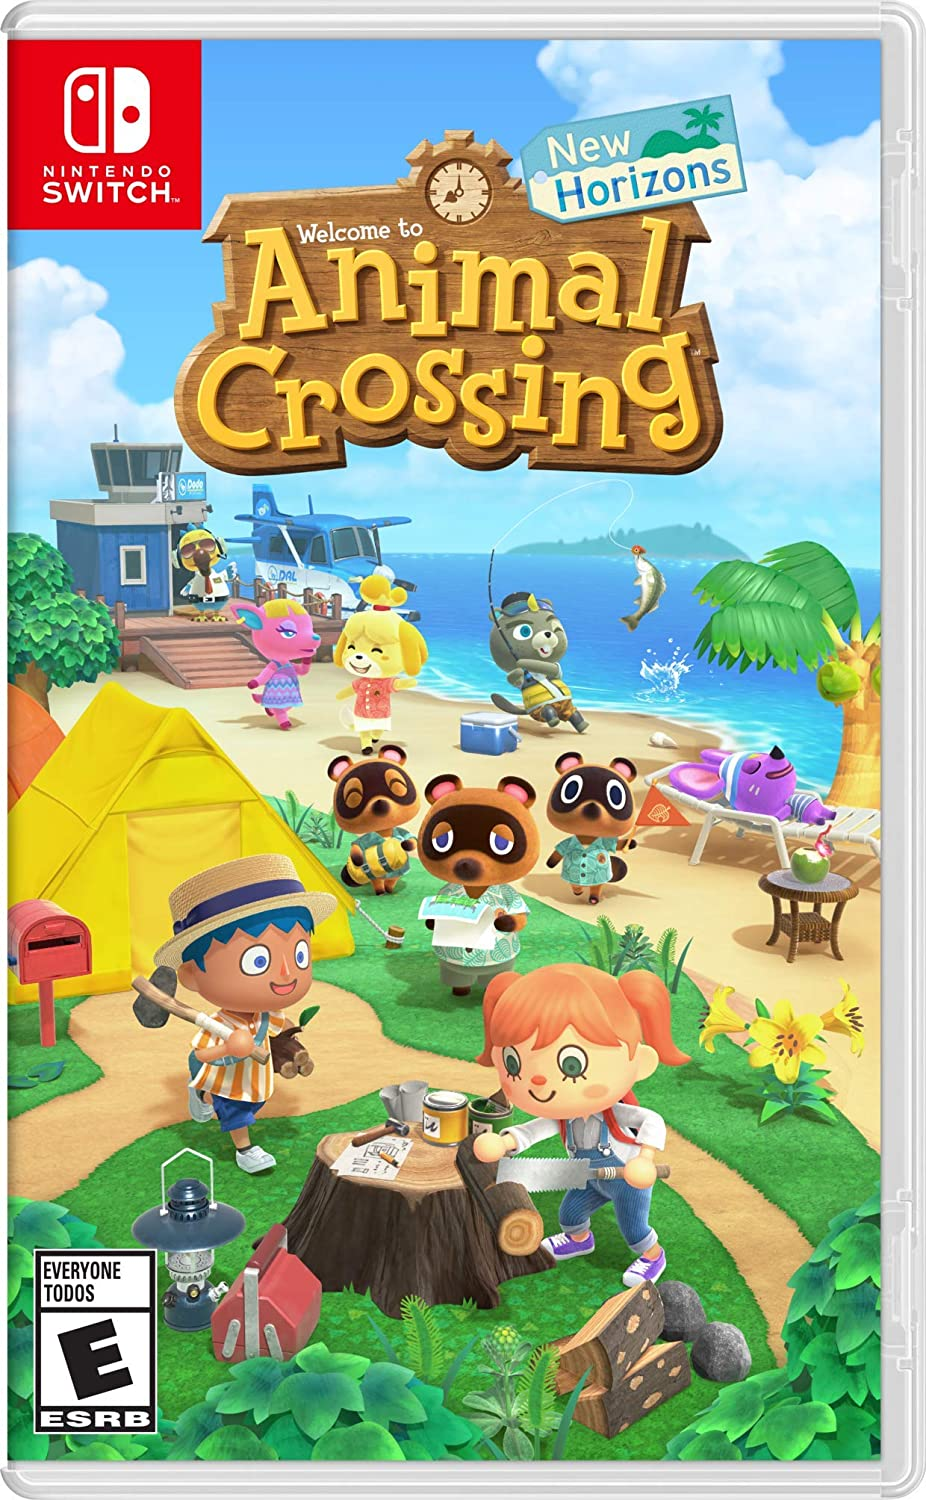 Animal Crossing: New Horizons Officially Releases for the Nintendo Switch WeeklyReviewer Animal Crossing: New Horizons